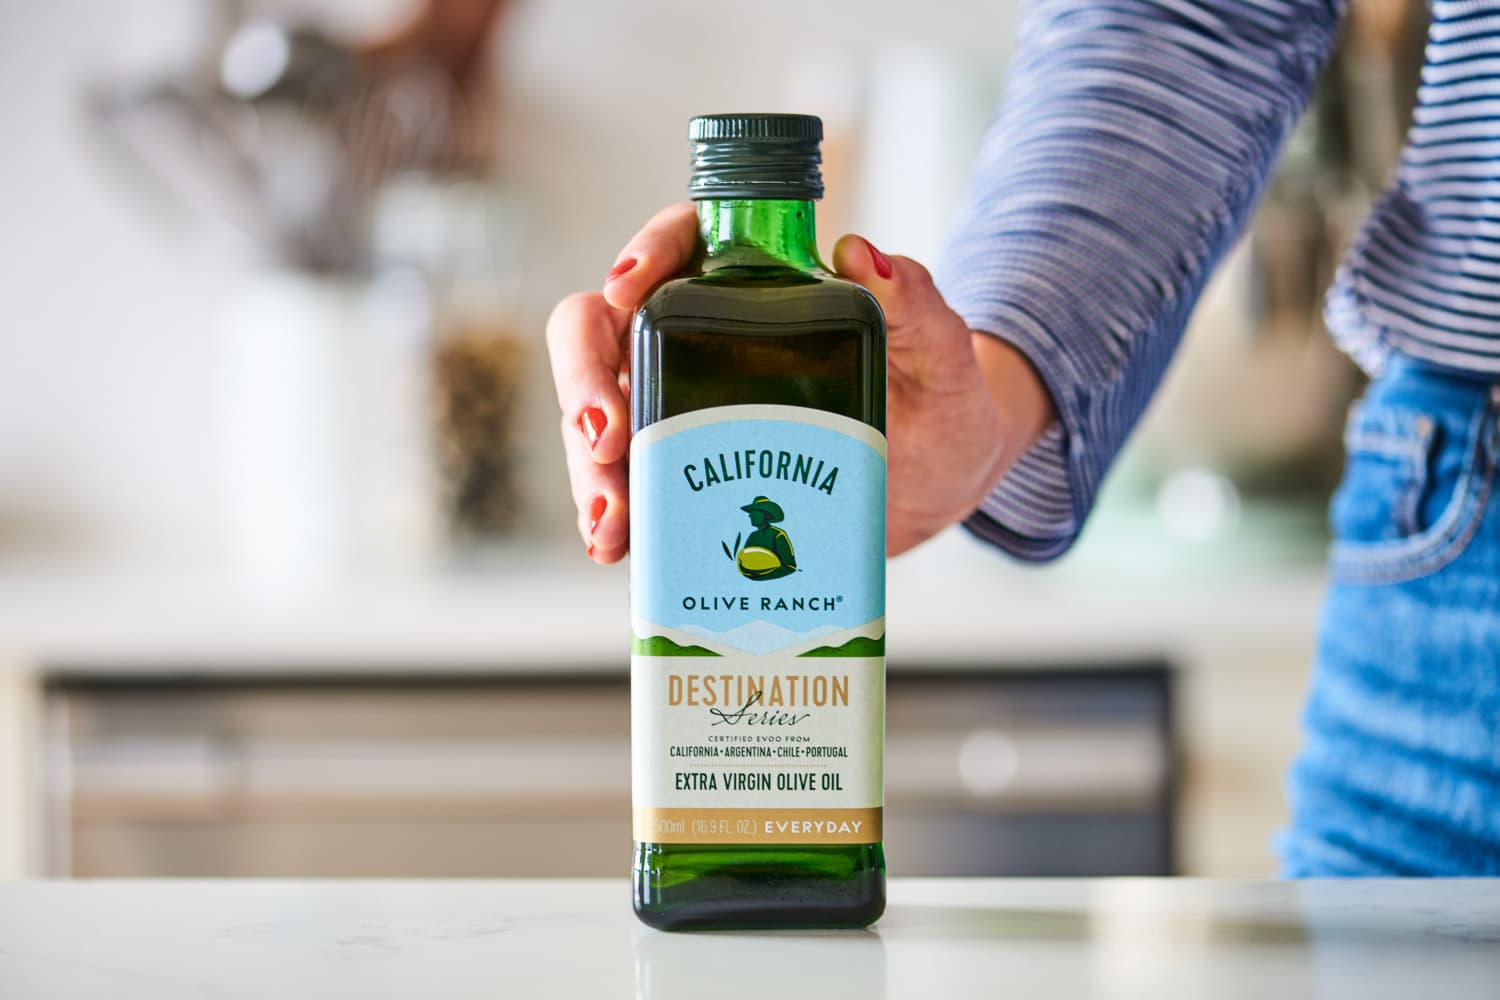 The First Thing You Should Do with a New Bottle of Olive Oil